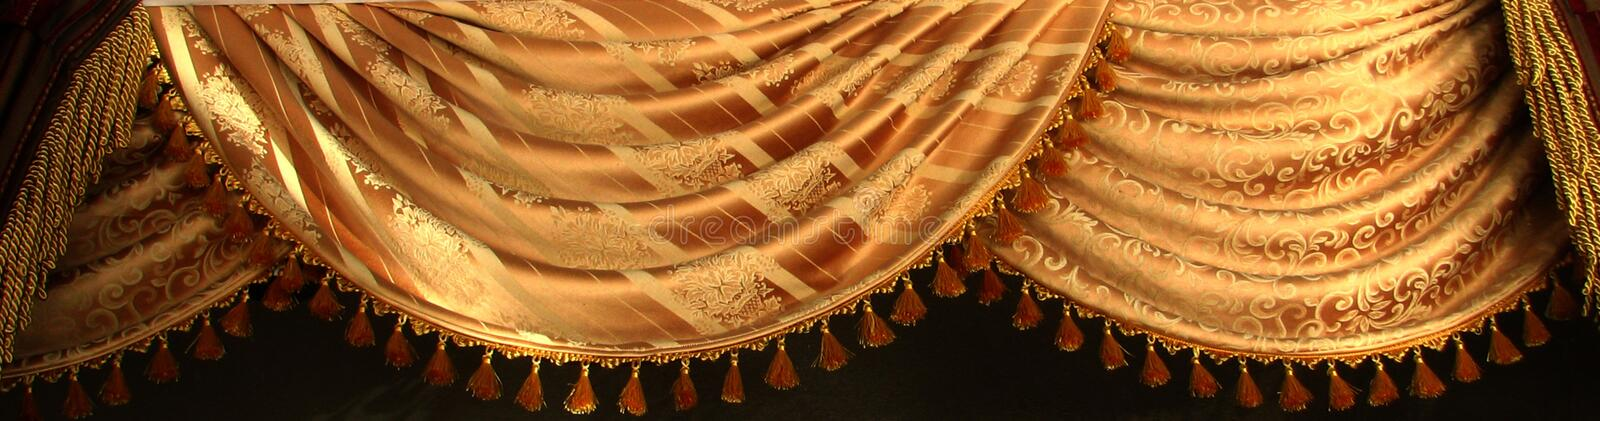 gold swag curtain with design royalty free stock photo